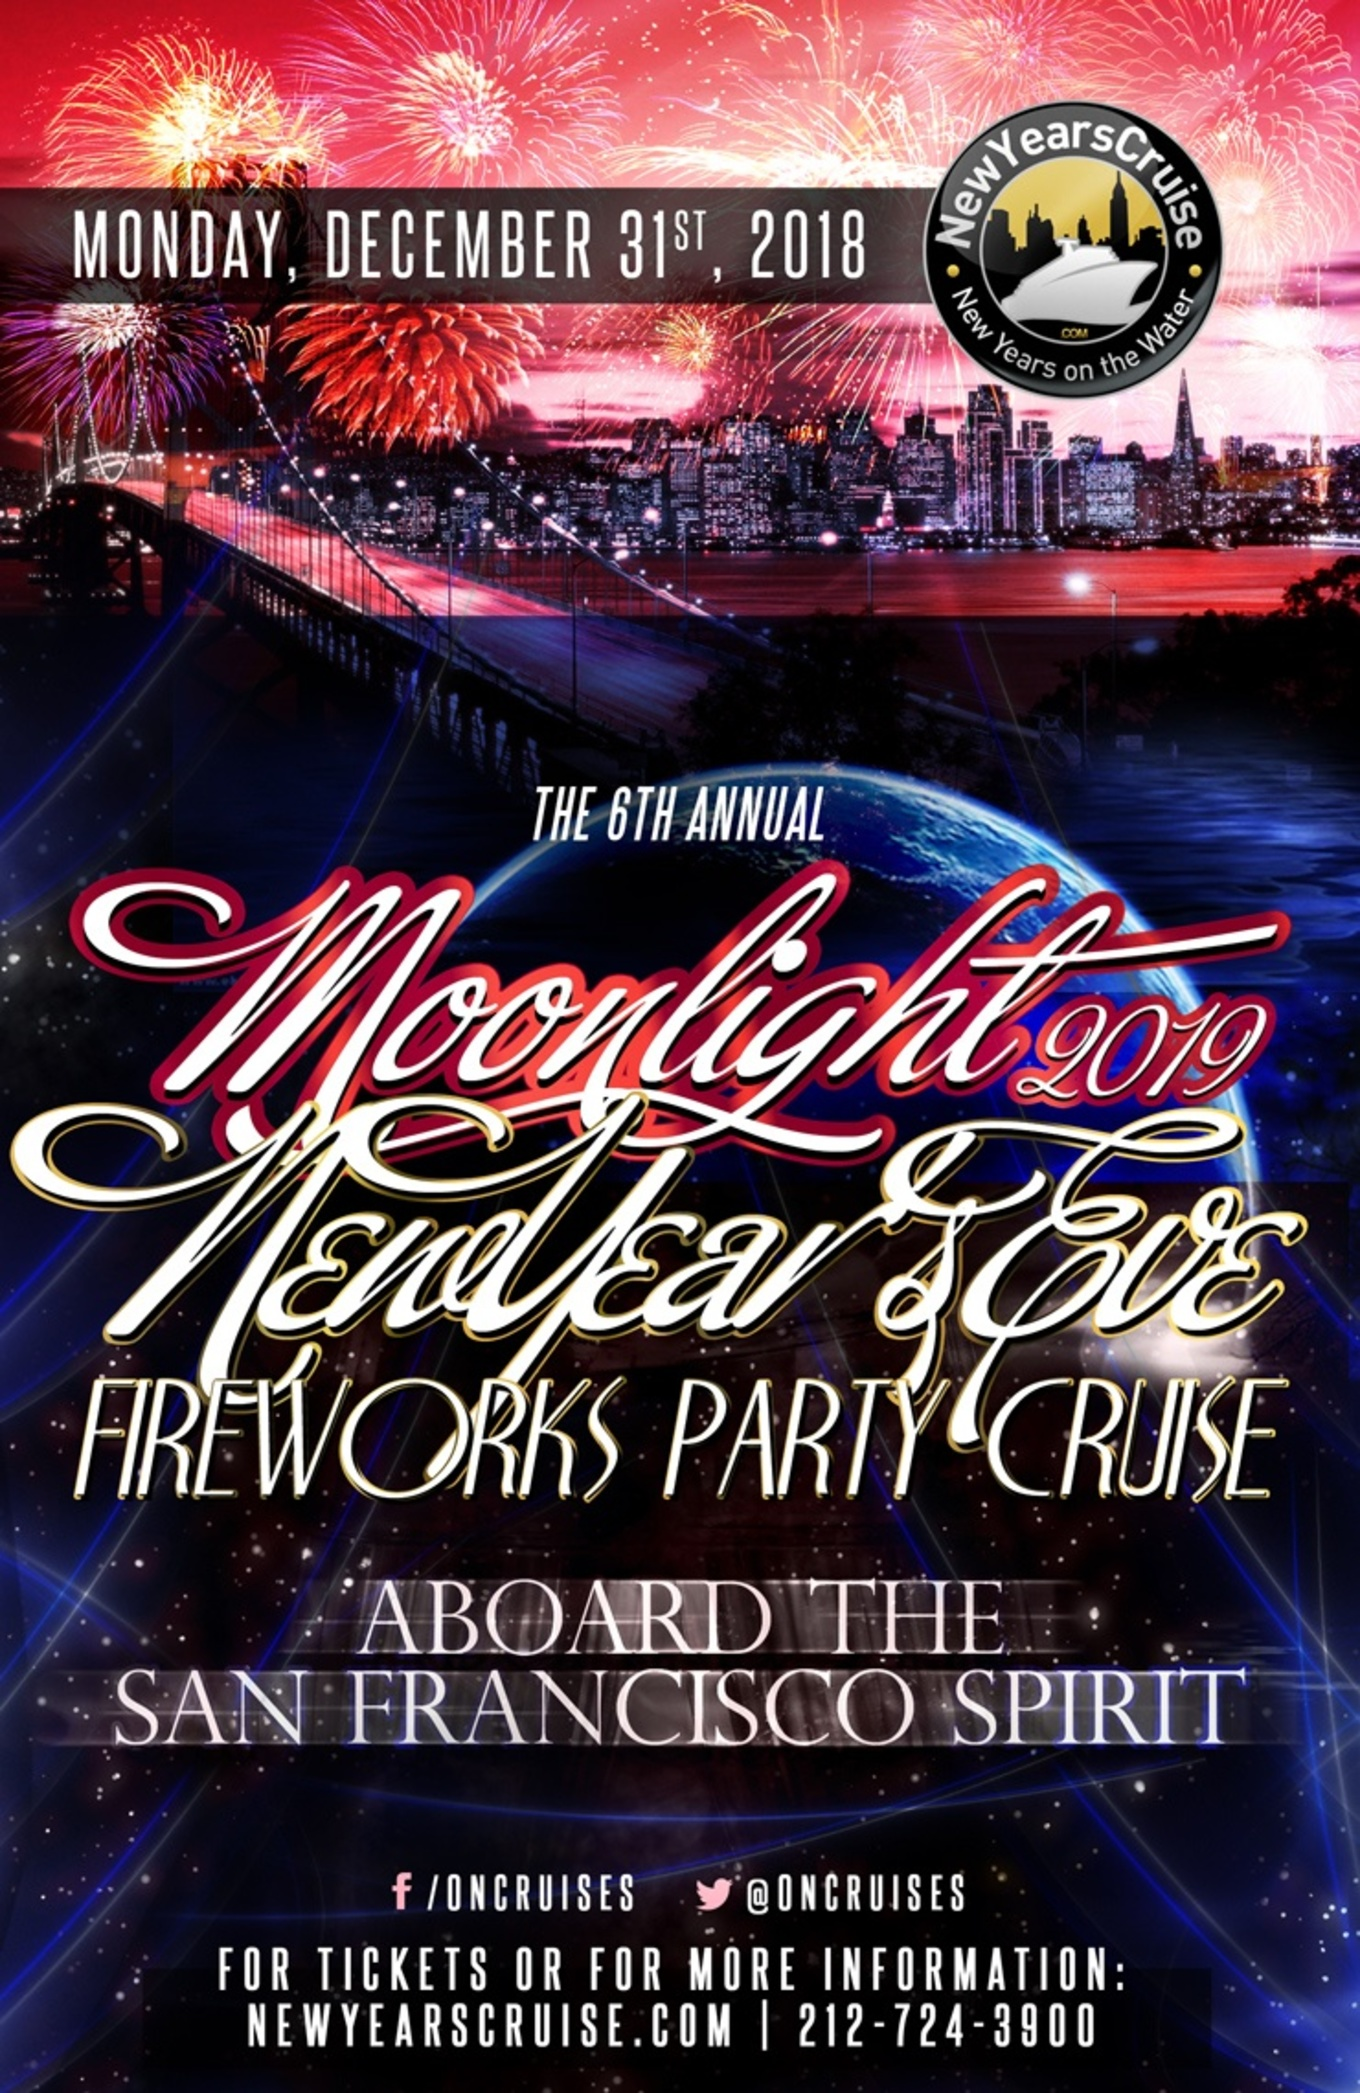 the 6th annual moonlight new year's eve fireworks party cruise